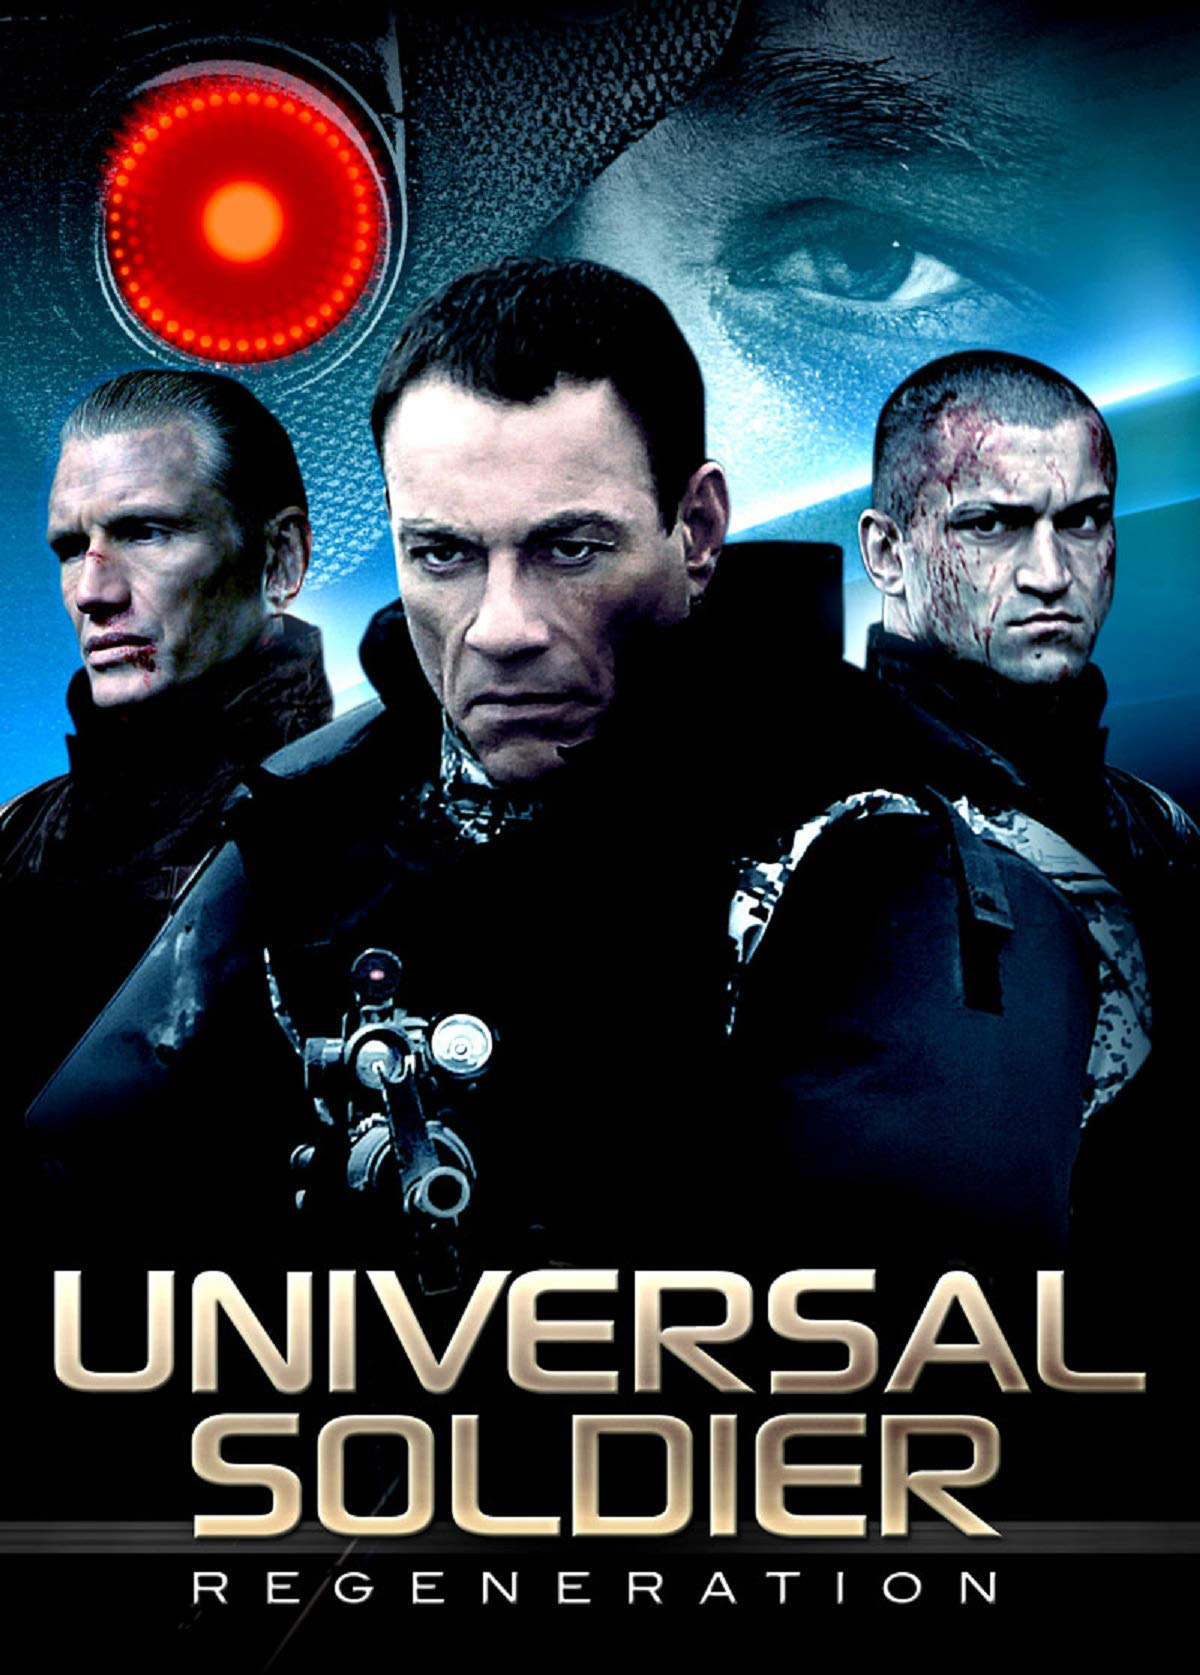 Universal Soldier - Regeneration on Amazon Prime Instant Video UK